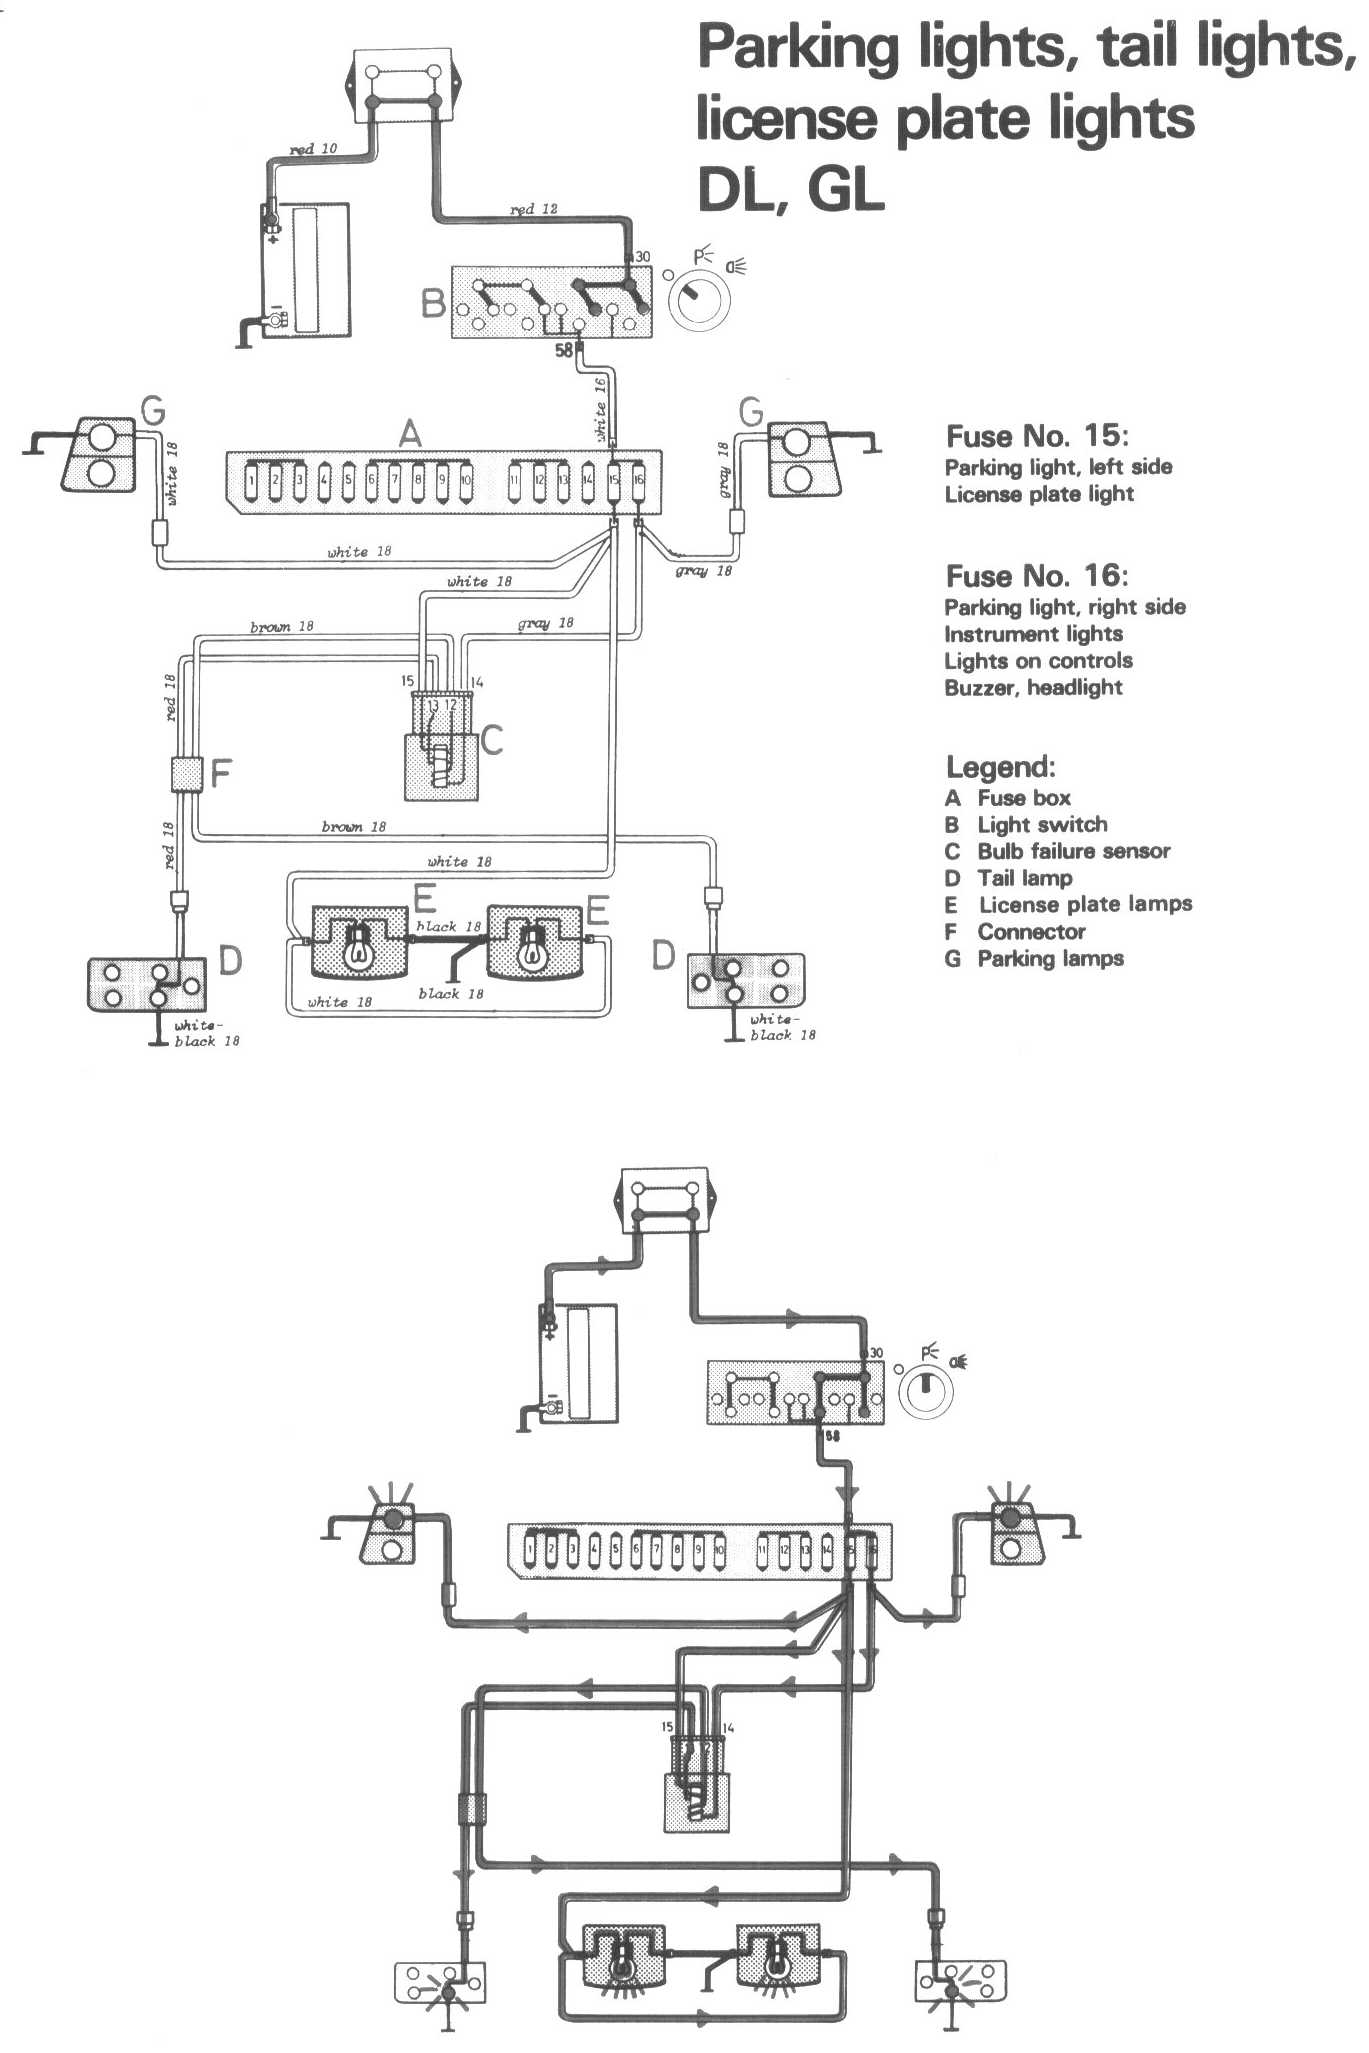 Volvo Tail Light Wiring Diagram | Wiring Diagram on volvo tools, volvo relay diagram, volvo battery, volvo dashboard, volvo yaw rate sensor, volvo snowmobile, international truck electrical diagrams, volvo xc90 fuse diagram, volvo recall information, volvo 740 diagram, volvo ignition, volvo brakes, volvo girls, volvo sport, volvo exhaust, volvo type r, volvo s60 fuse diagram, volvo truck radio wiring harness, volvo fuse box location, volvo maintenance schedule,